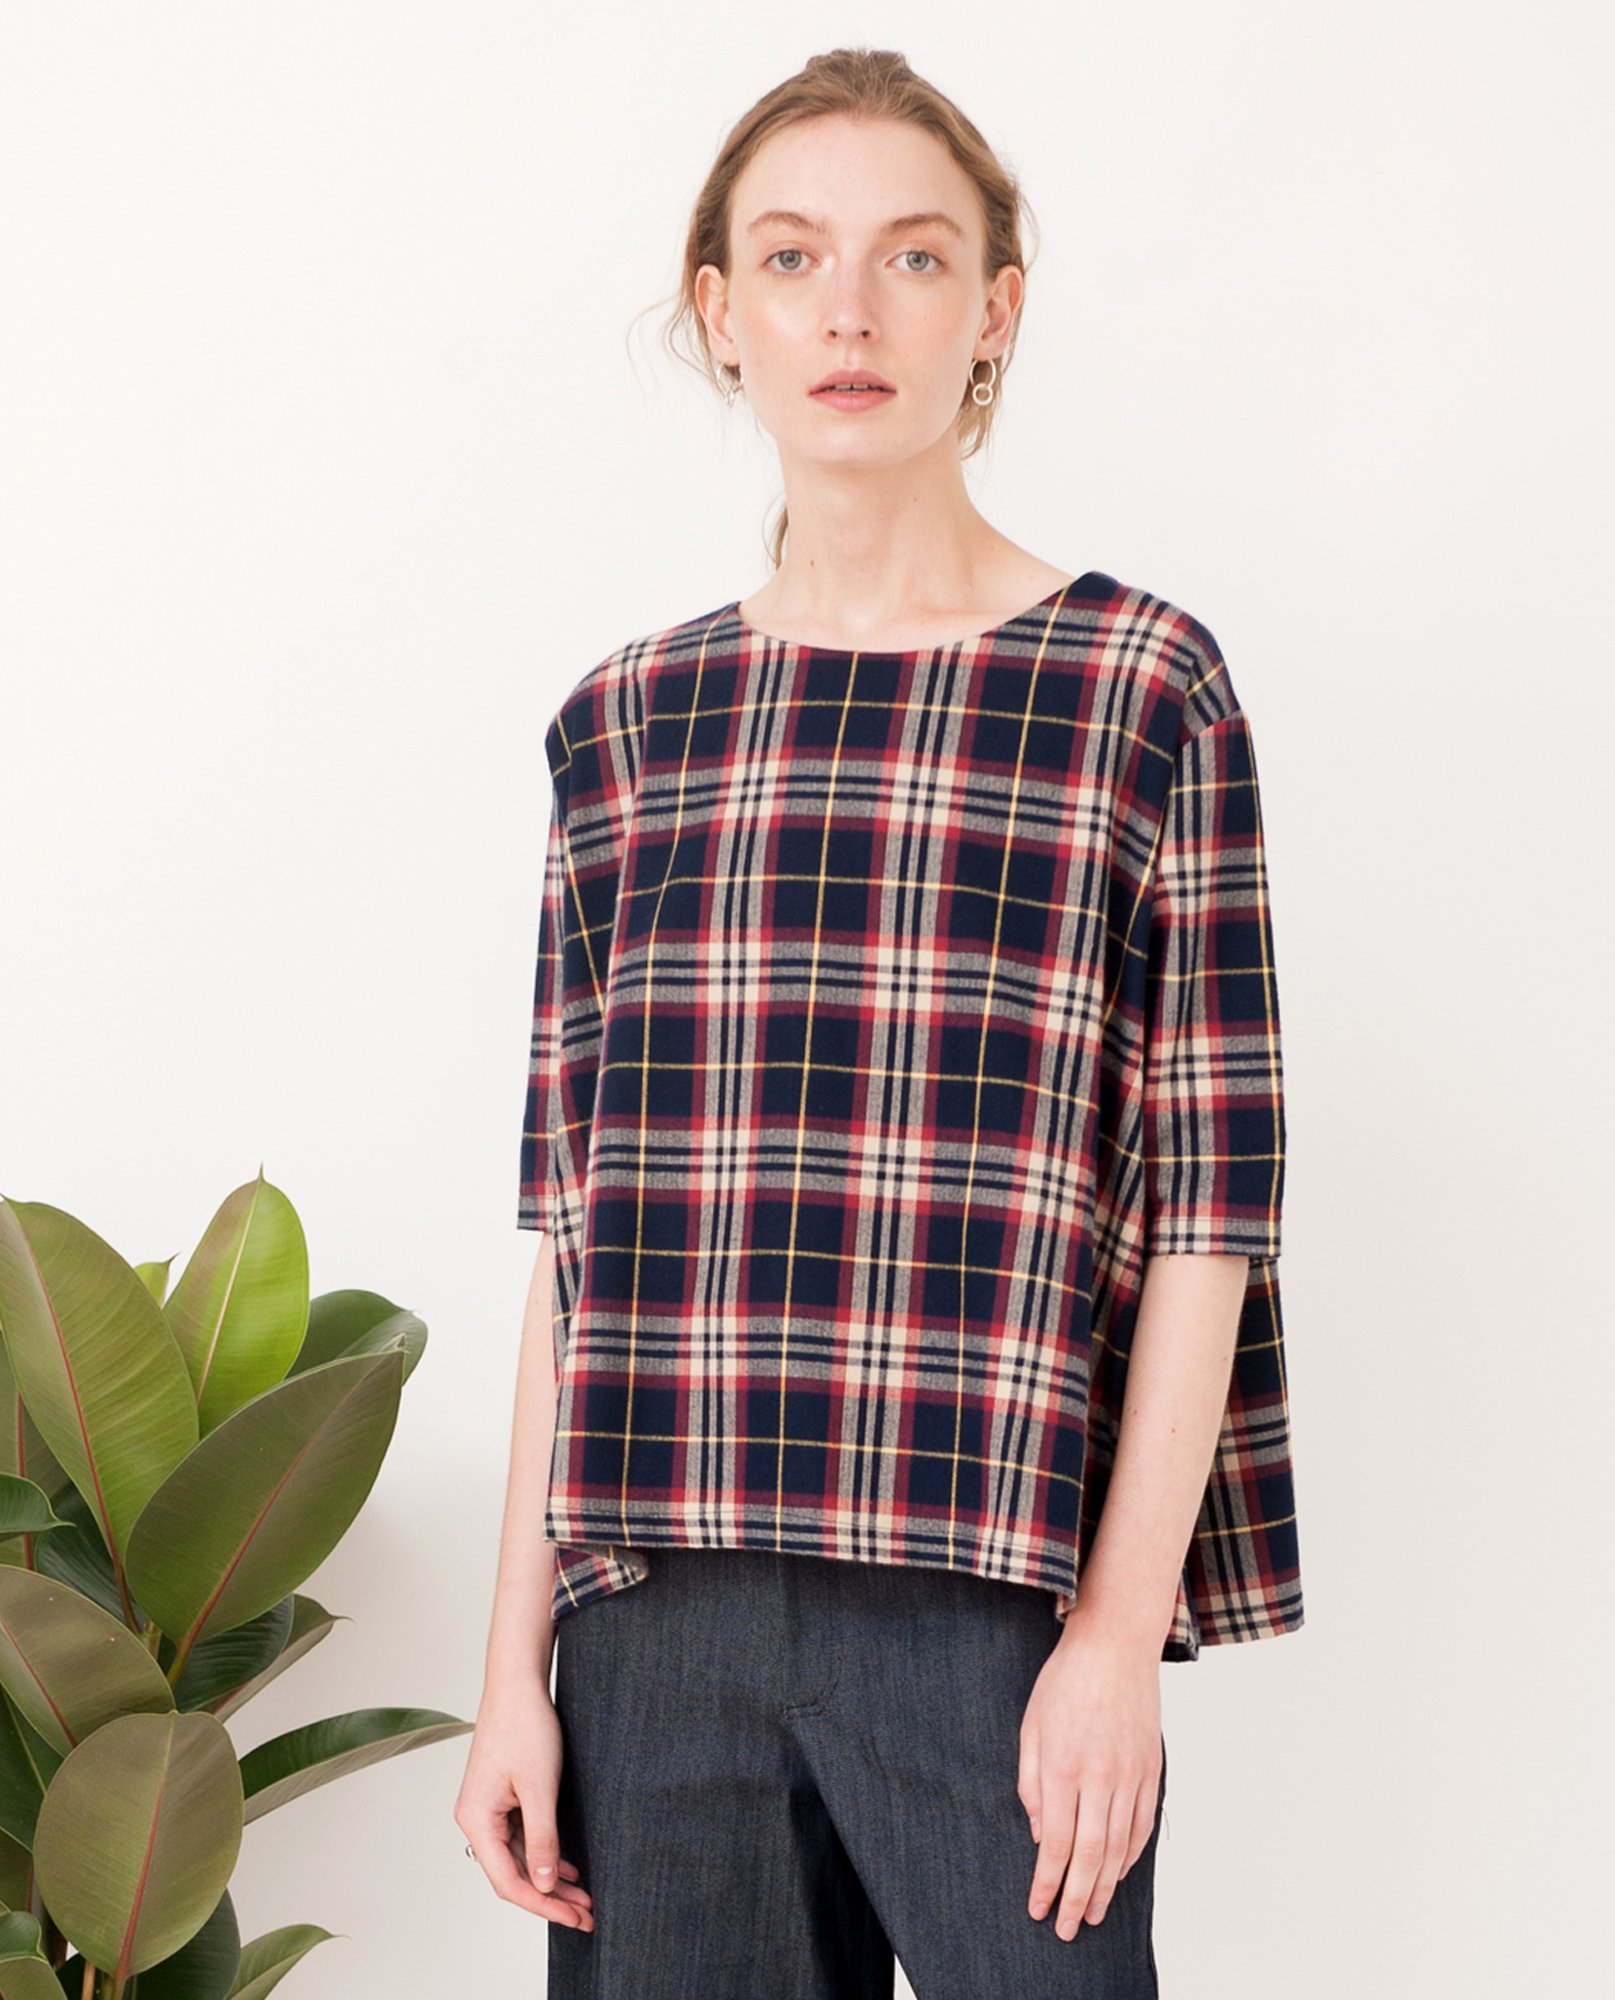 ELLA Cotton Tartan Top from Beaumont Organic